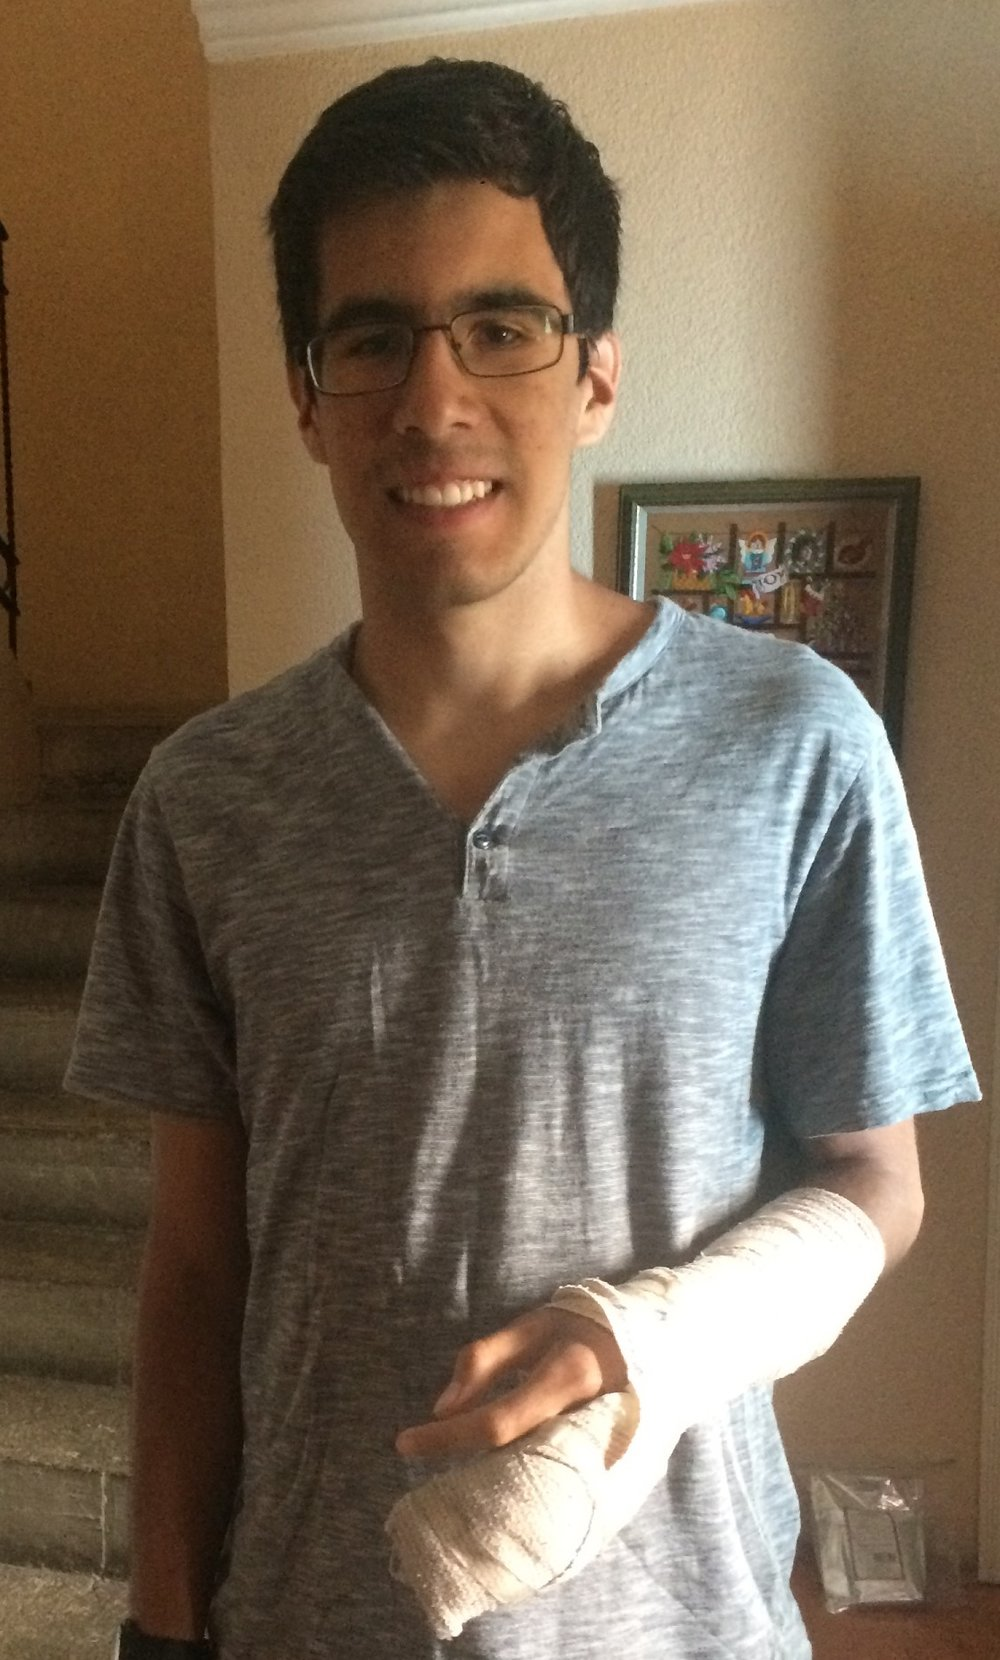 Halfway through Summit, Caleb dislocated and fractured a finger while white-water rafting. He quickly learned about US hospitals and insurance and ended up having surgery on his finger one day before returning to California. Talk about a crash course in independence!